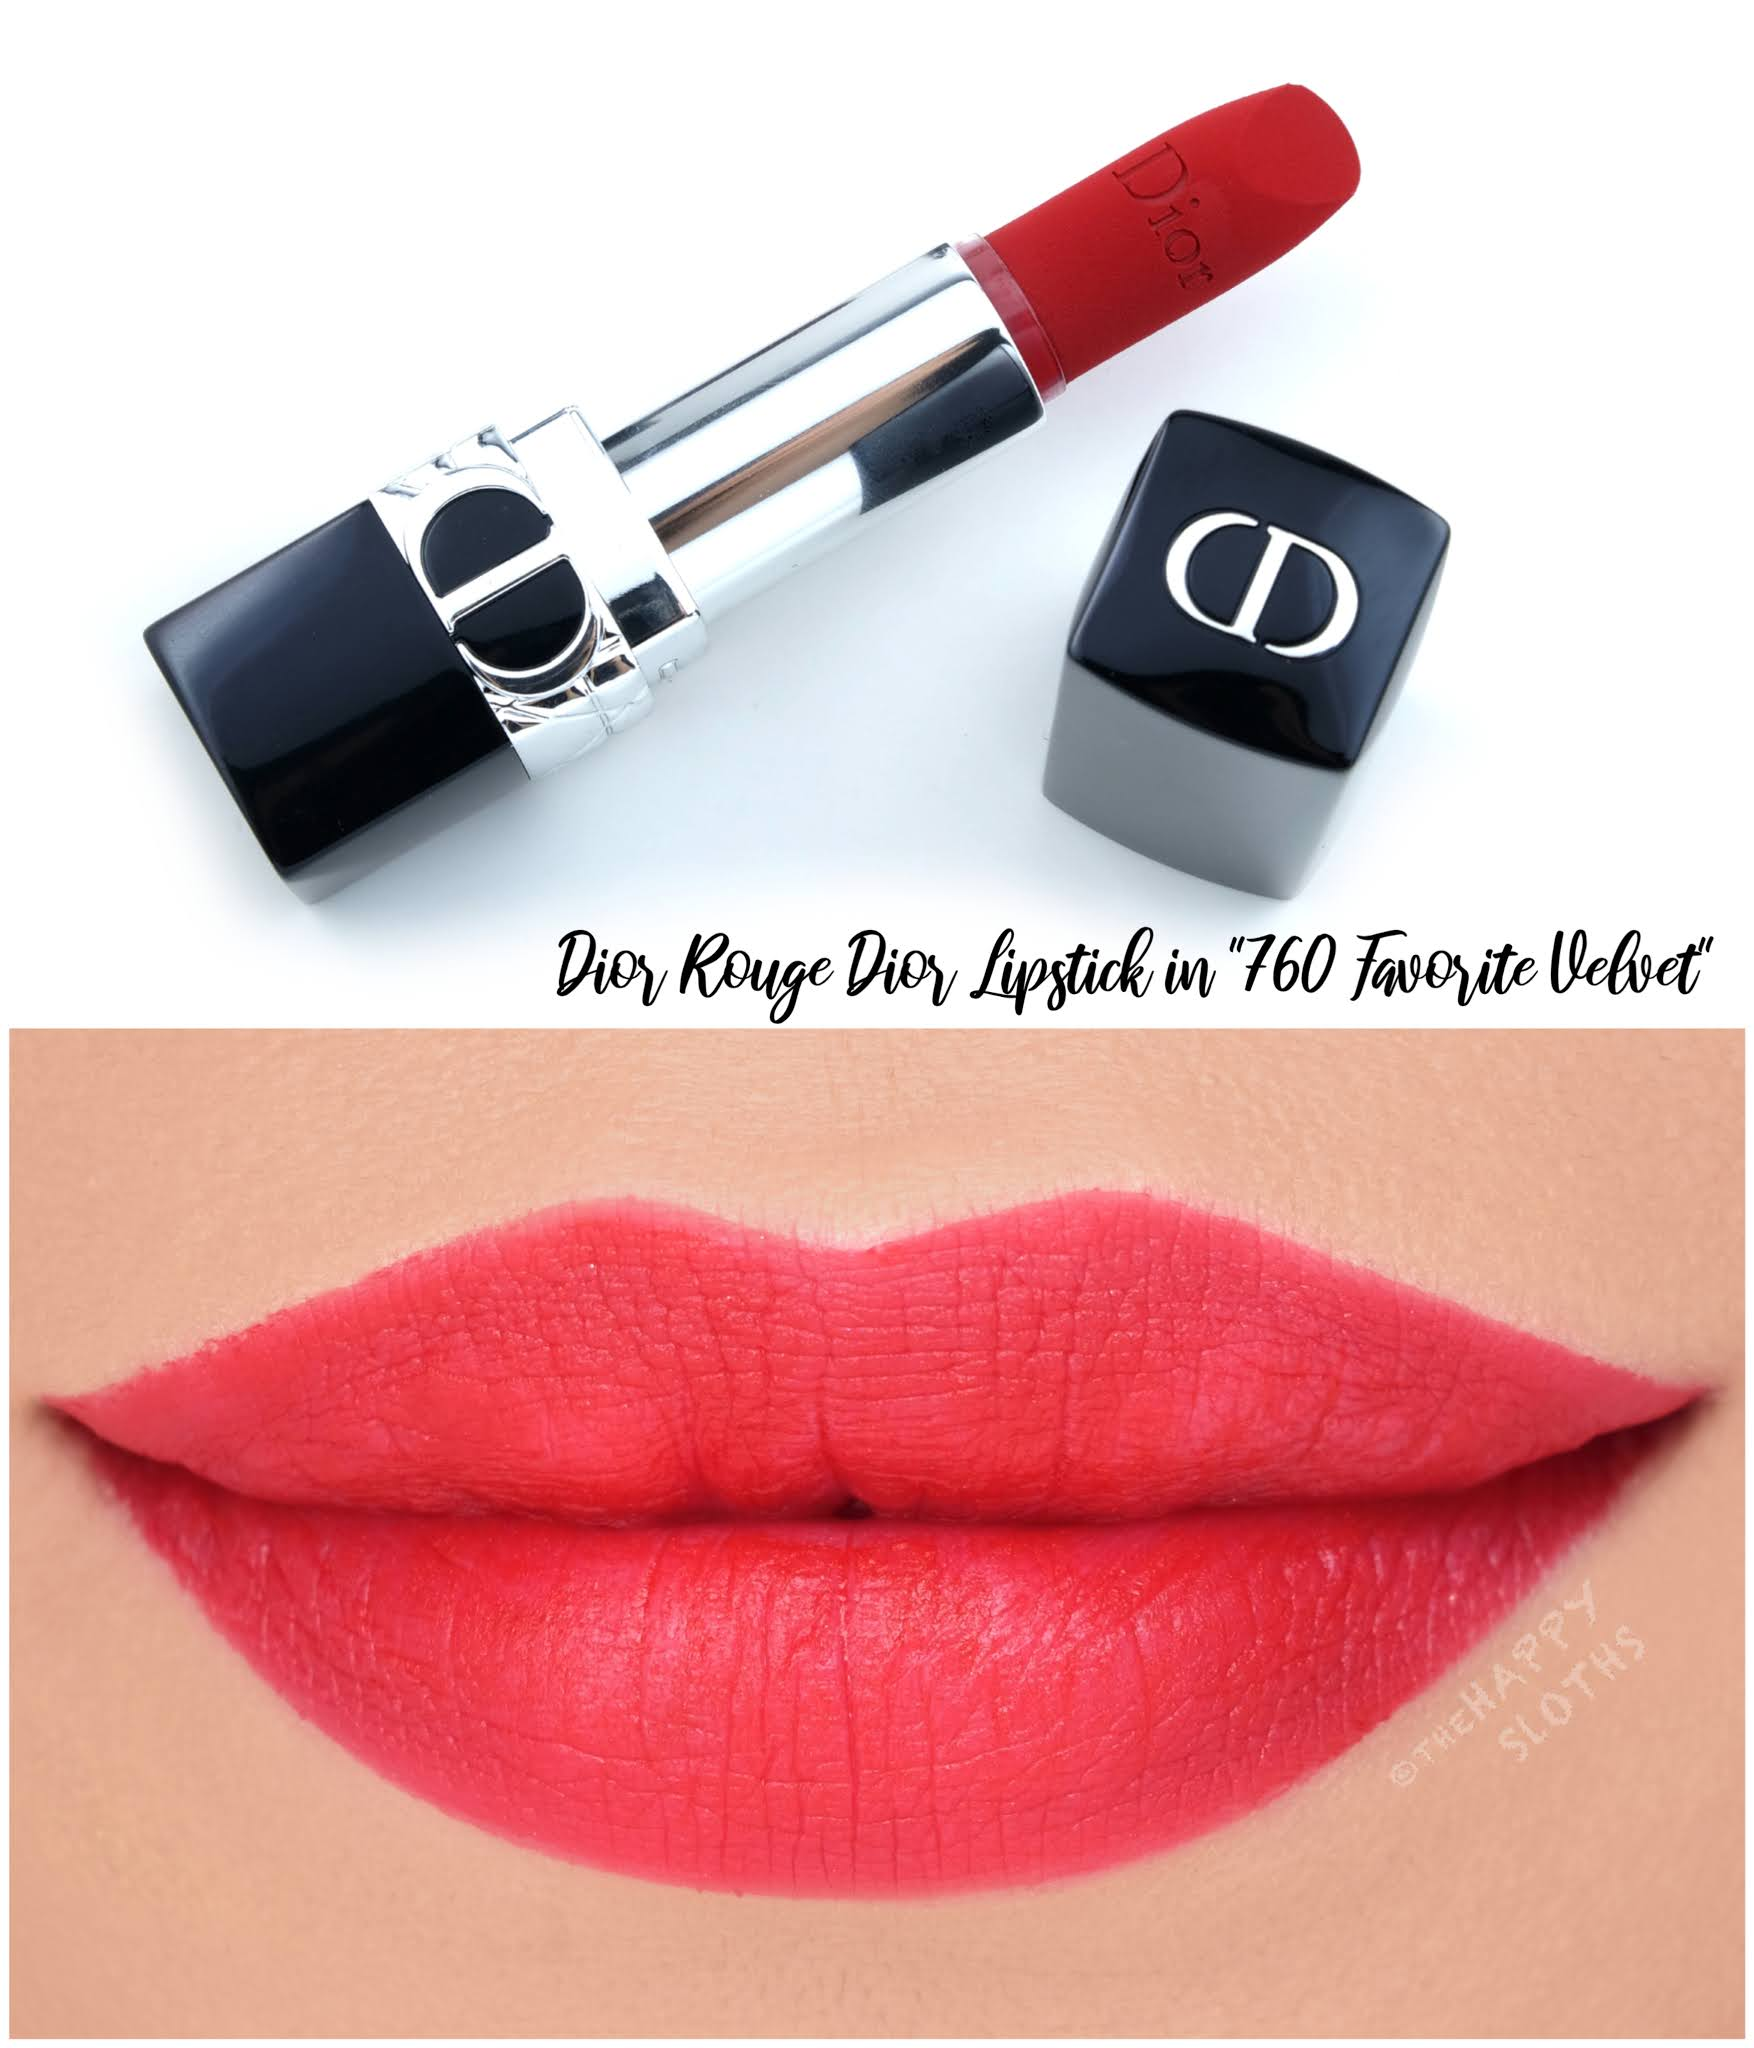 Dior | *NEW* Rouge Dior Refillable Lipstick in 760 Favorite Velvet: Review and Swatches